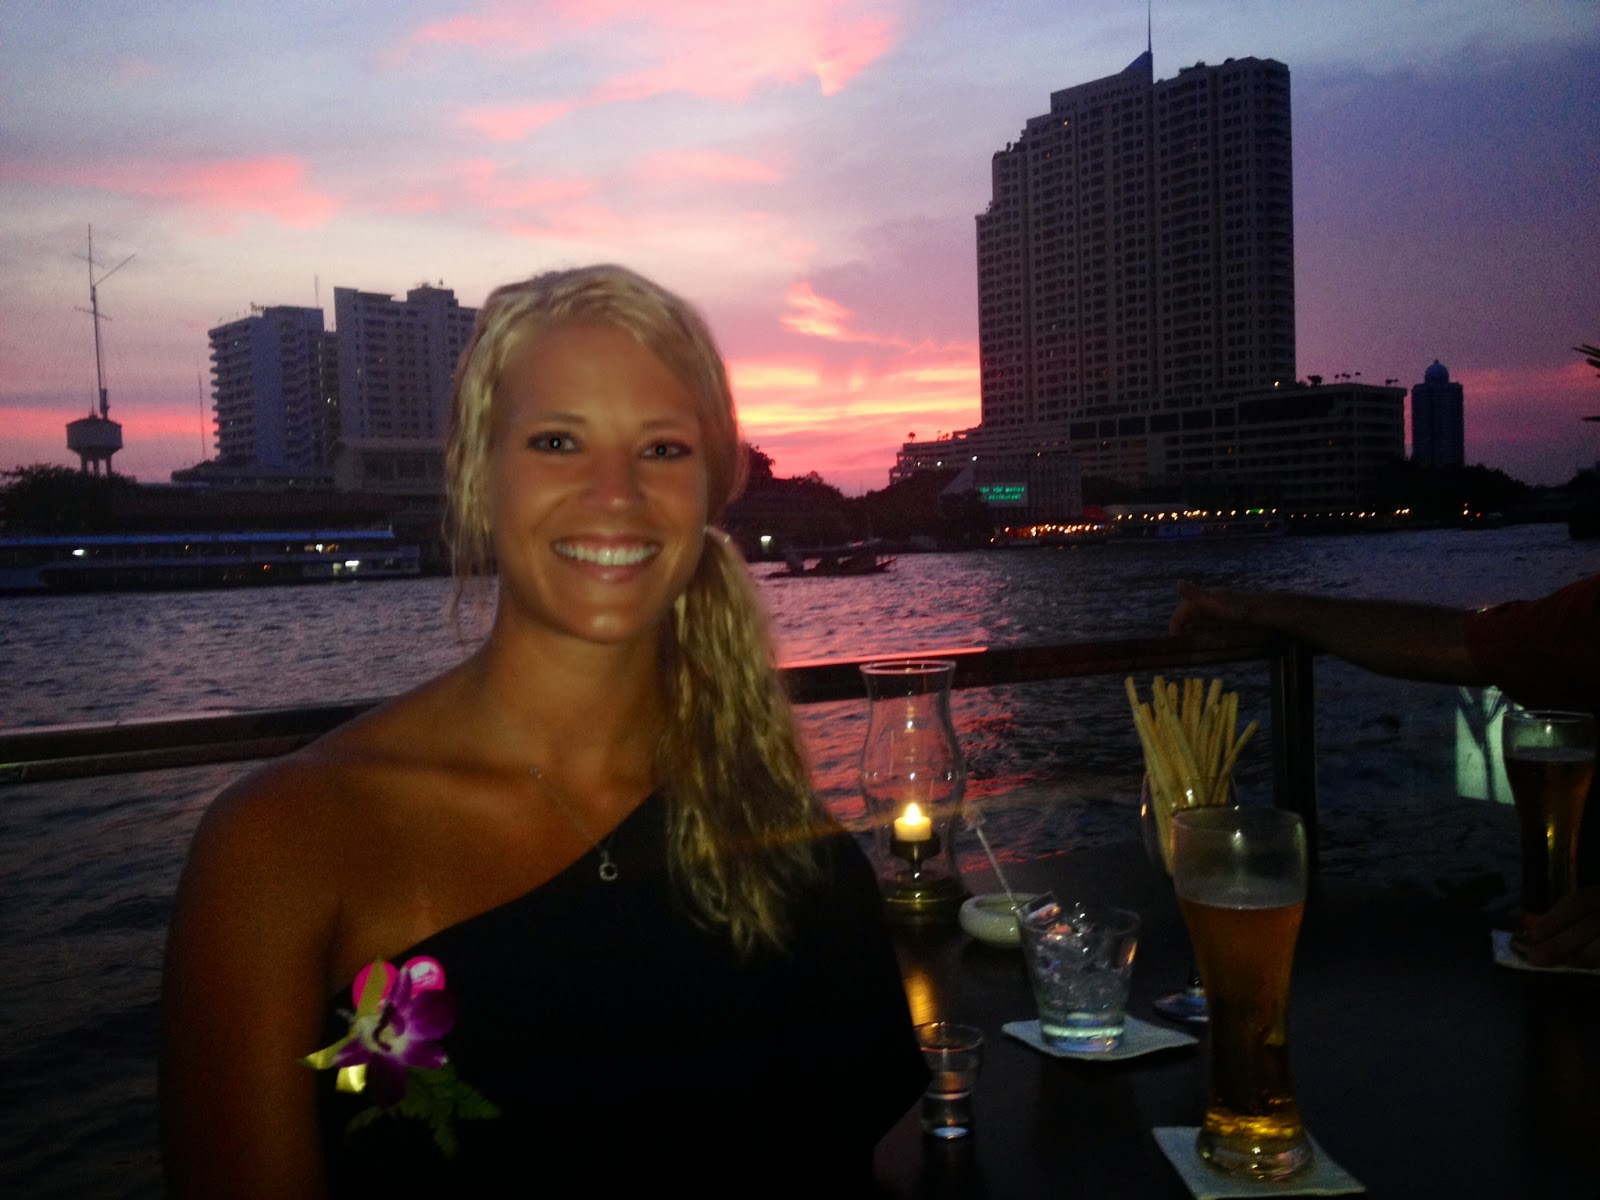 Chao Phraya Bangkok Dinner Cruise Sunset